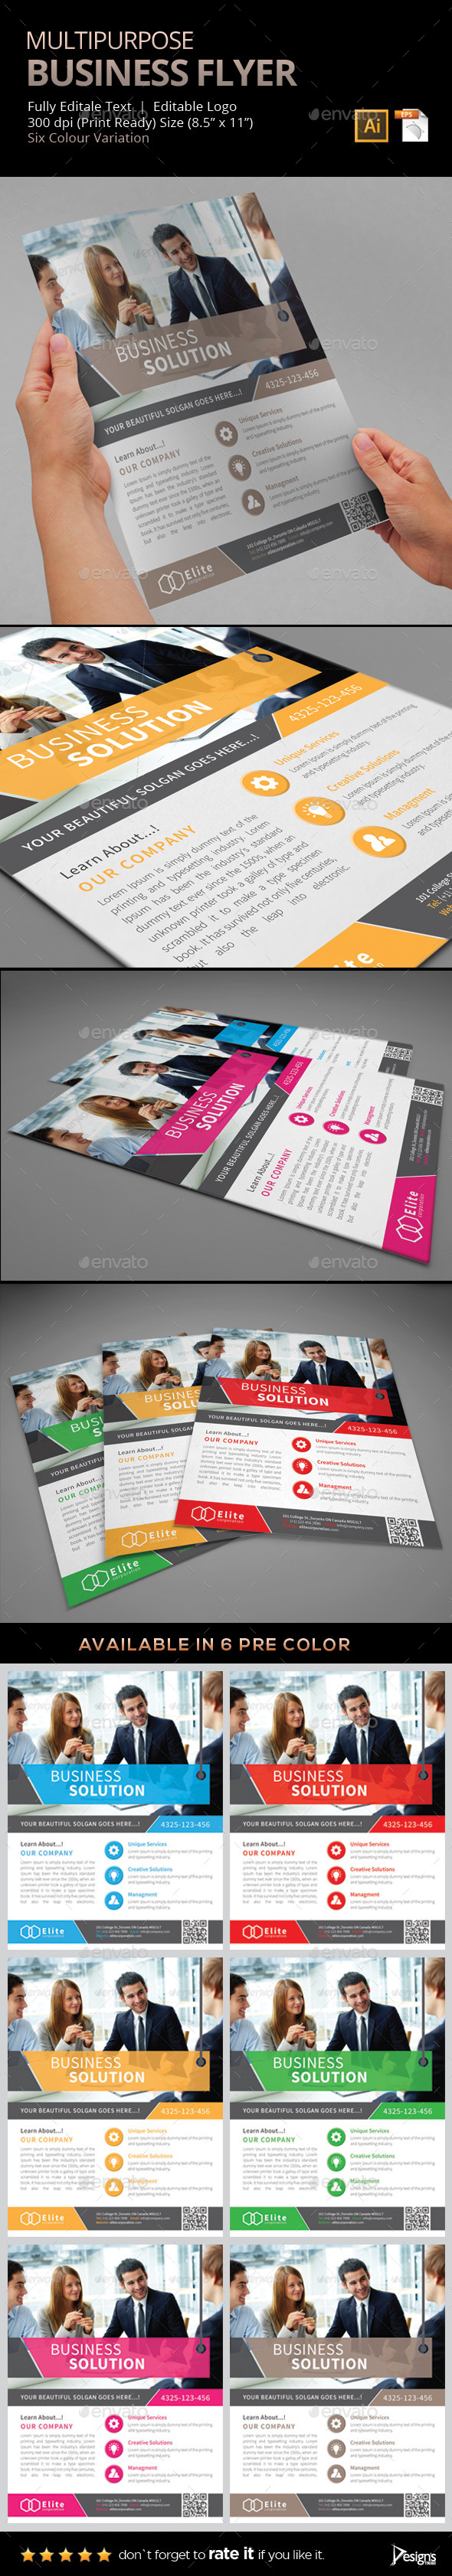 GraphicRiver Flyer Multipurpose Business Flyer 7 9301791